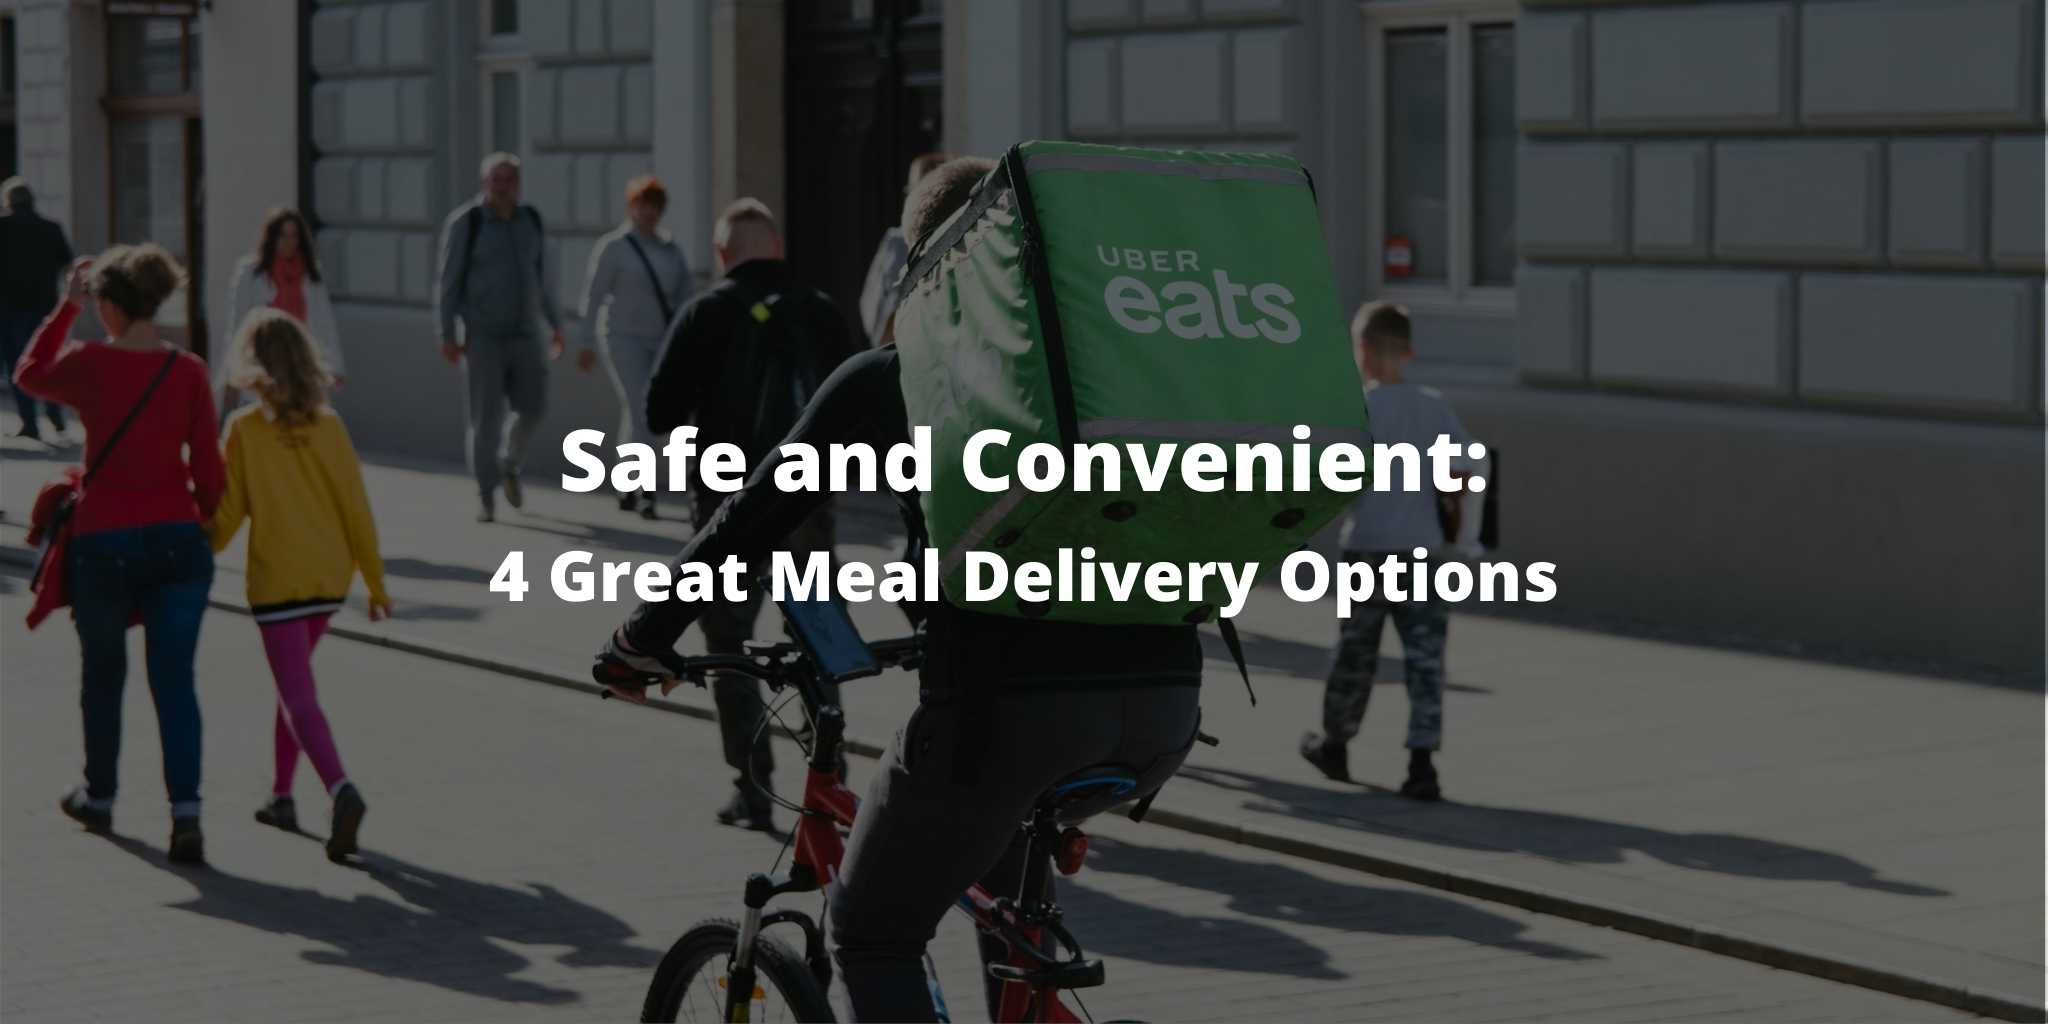 Safe and Convenient: 4 Great Meal Delivery Options